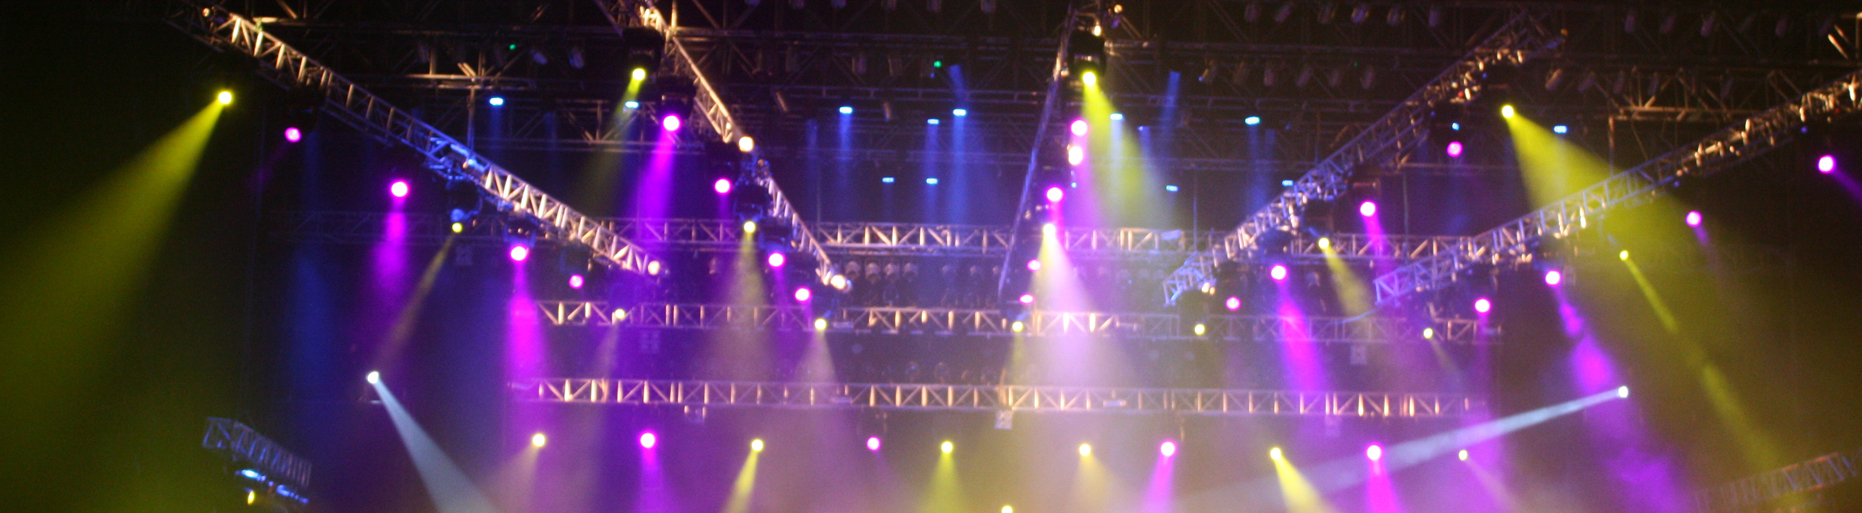 It S Never Been Er Or Easier To Hook Your Stage Up With Cool Led Lights And So We Ve Complied A Best Of Lighting Roundup Here Make